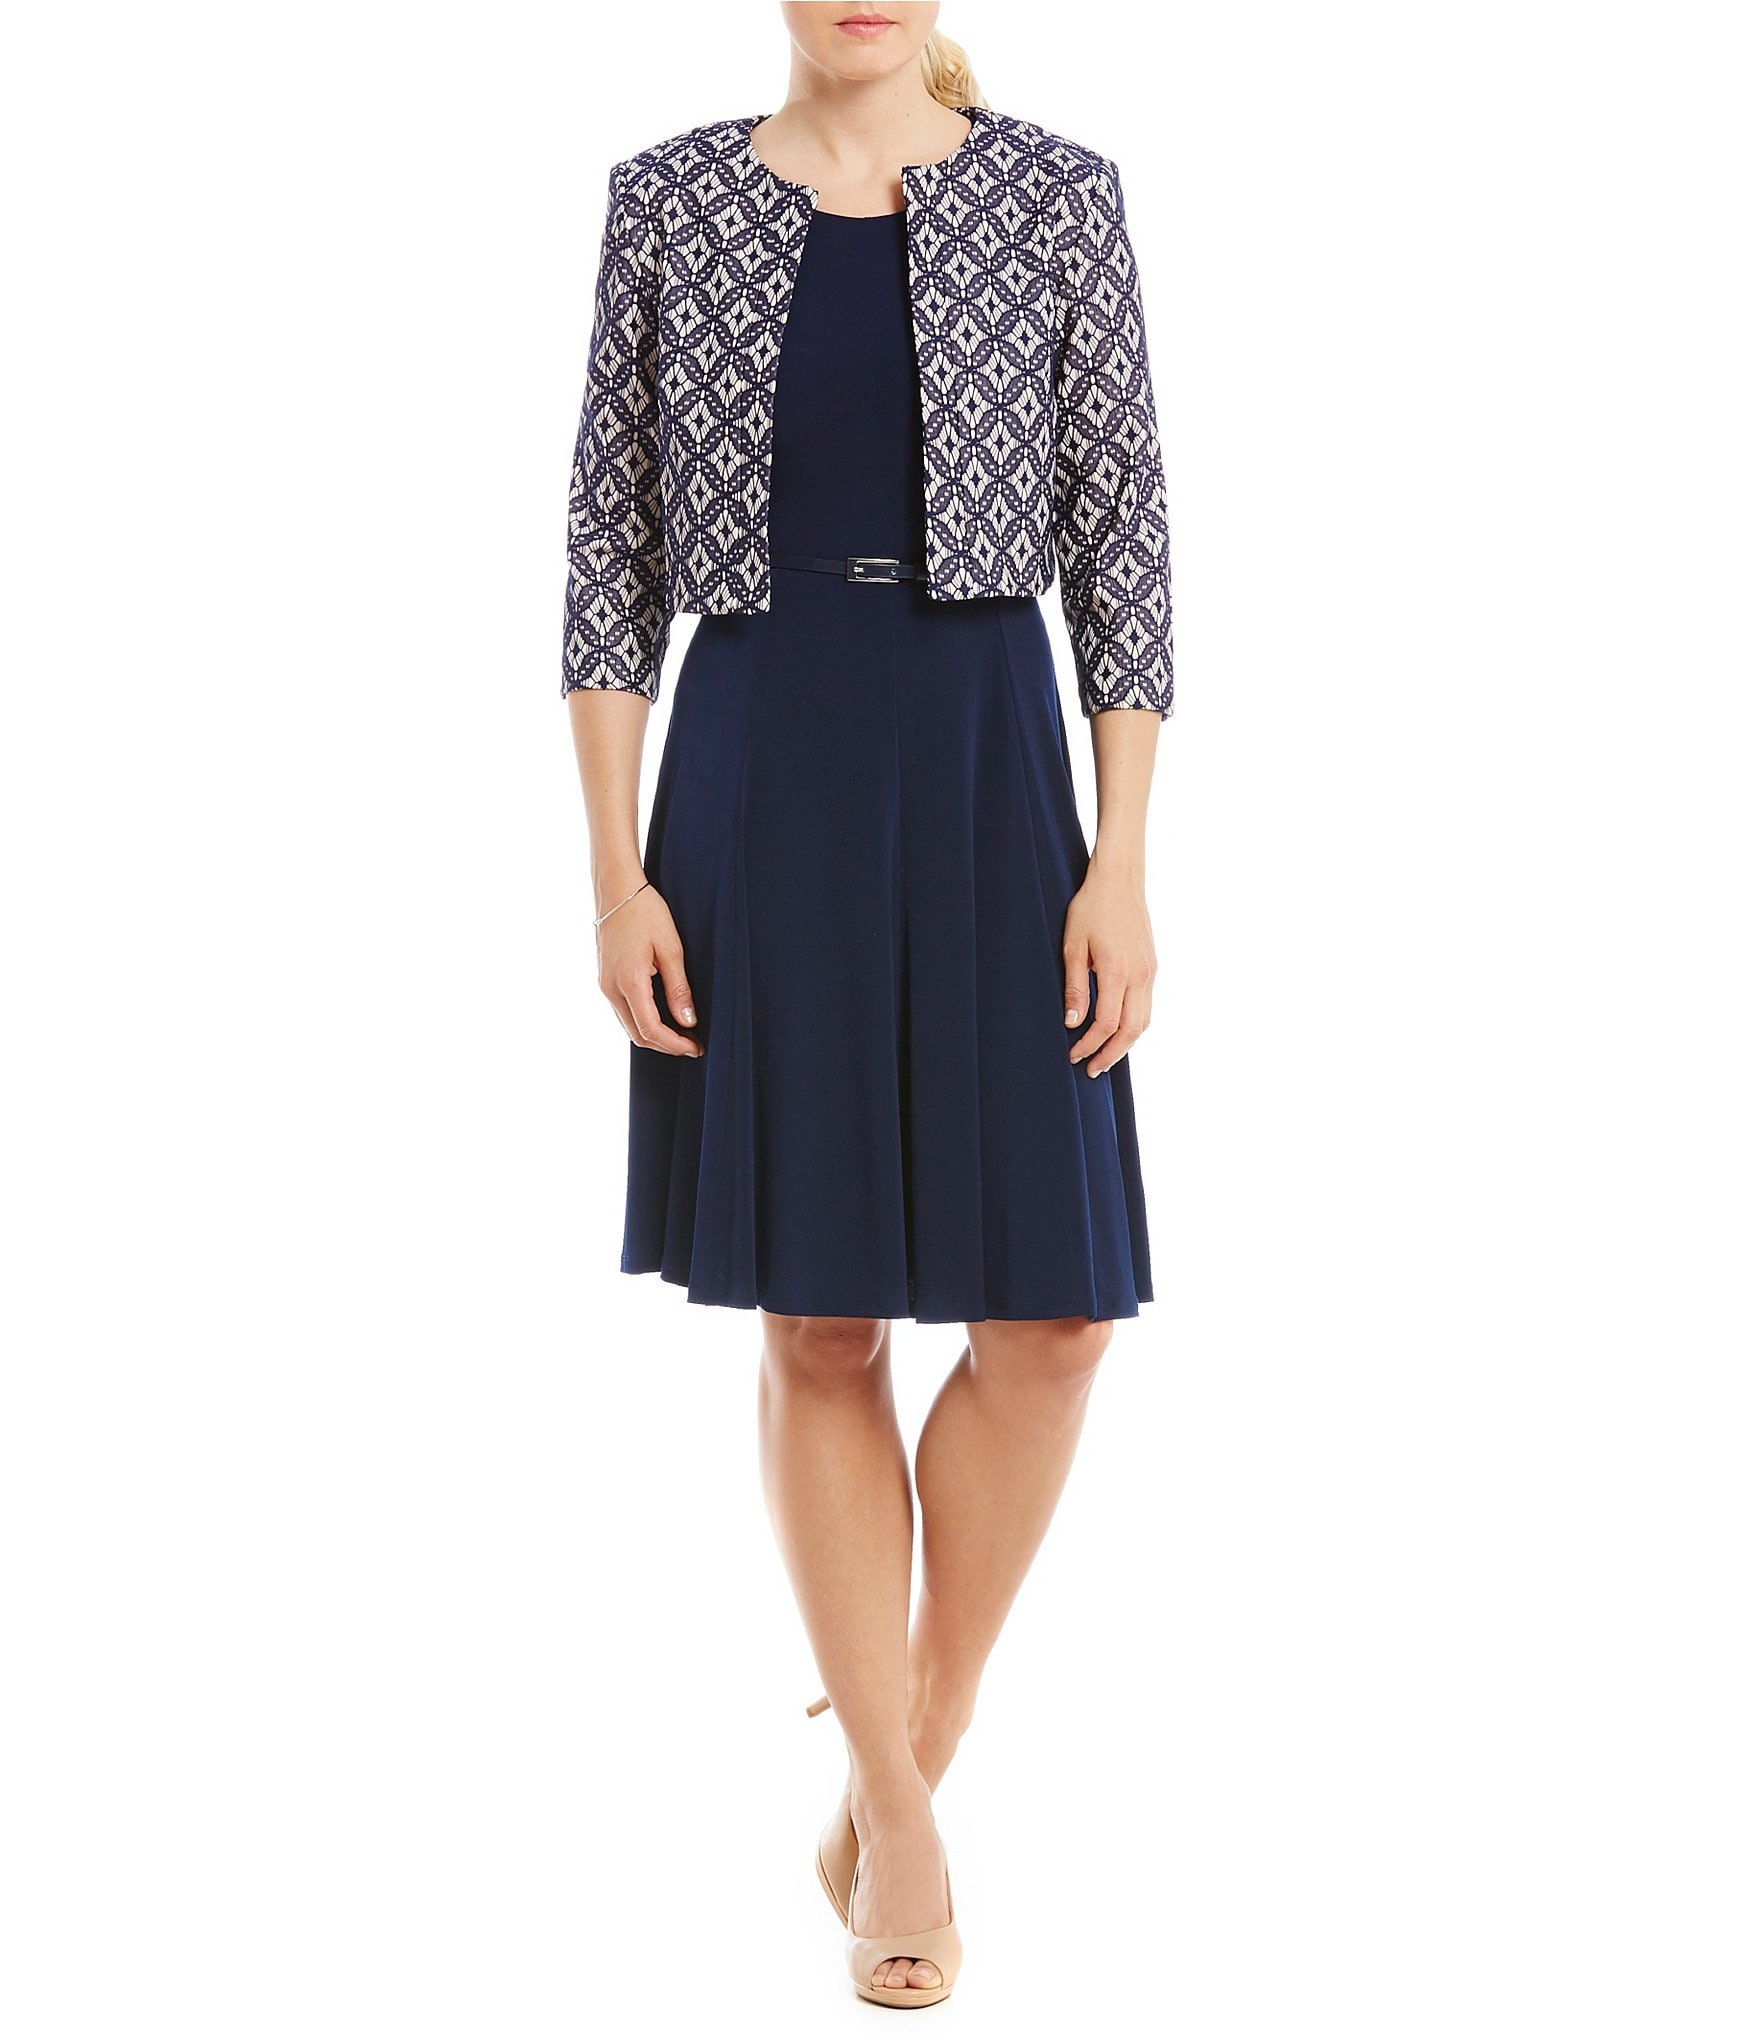 Navy Dress With Tan Shoes